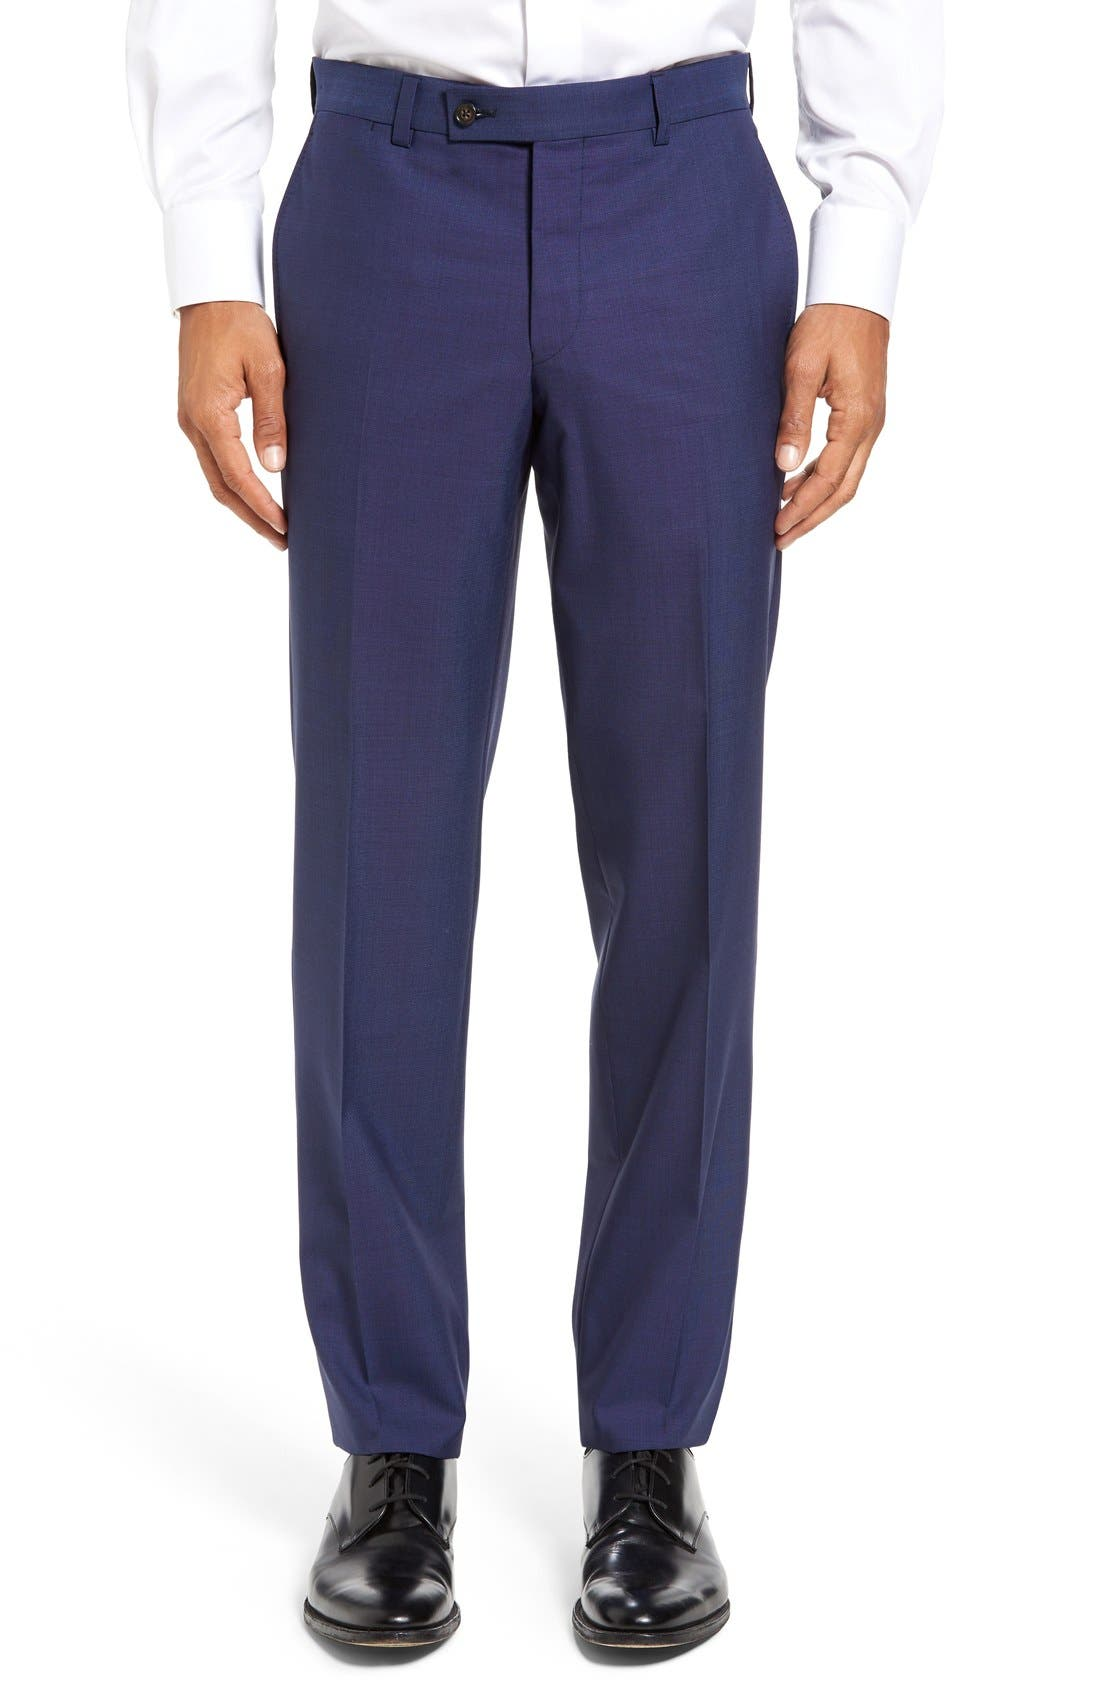 TED BAKER LONDON, Jefferson Flat Front Solid Wool Trousers, Main thumbnail 1, color, BLUE